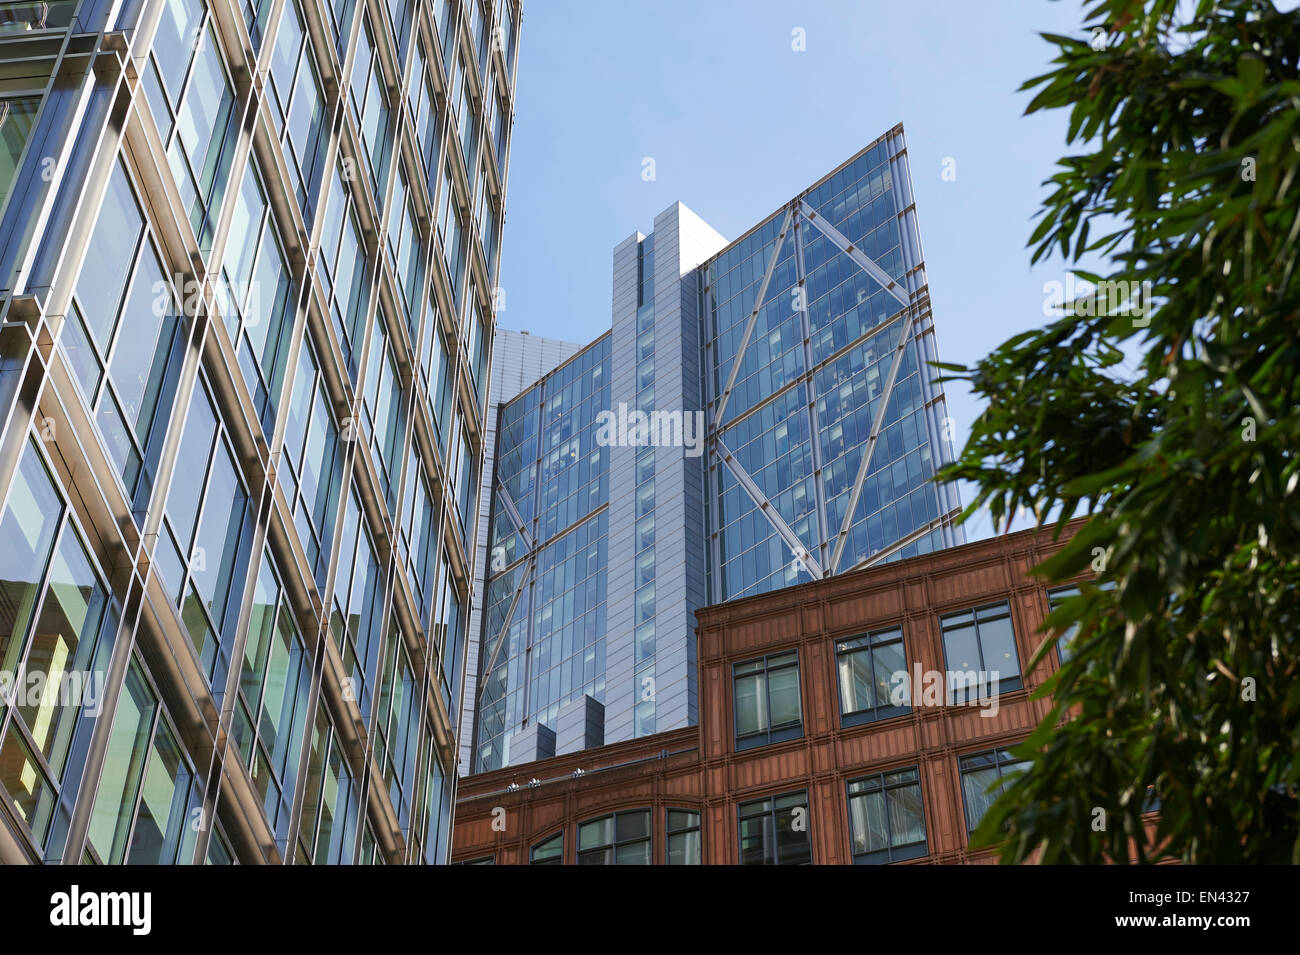 Modern architecture in the Broadgate area, City of London, UK - Stock Image